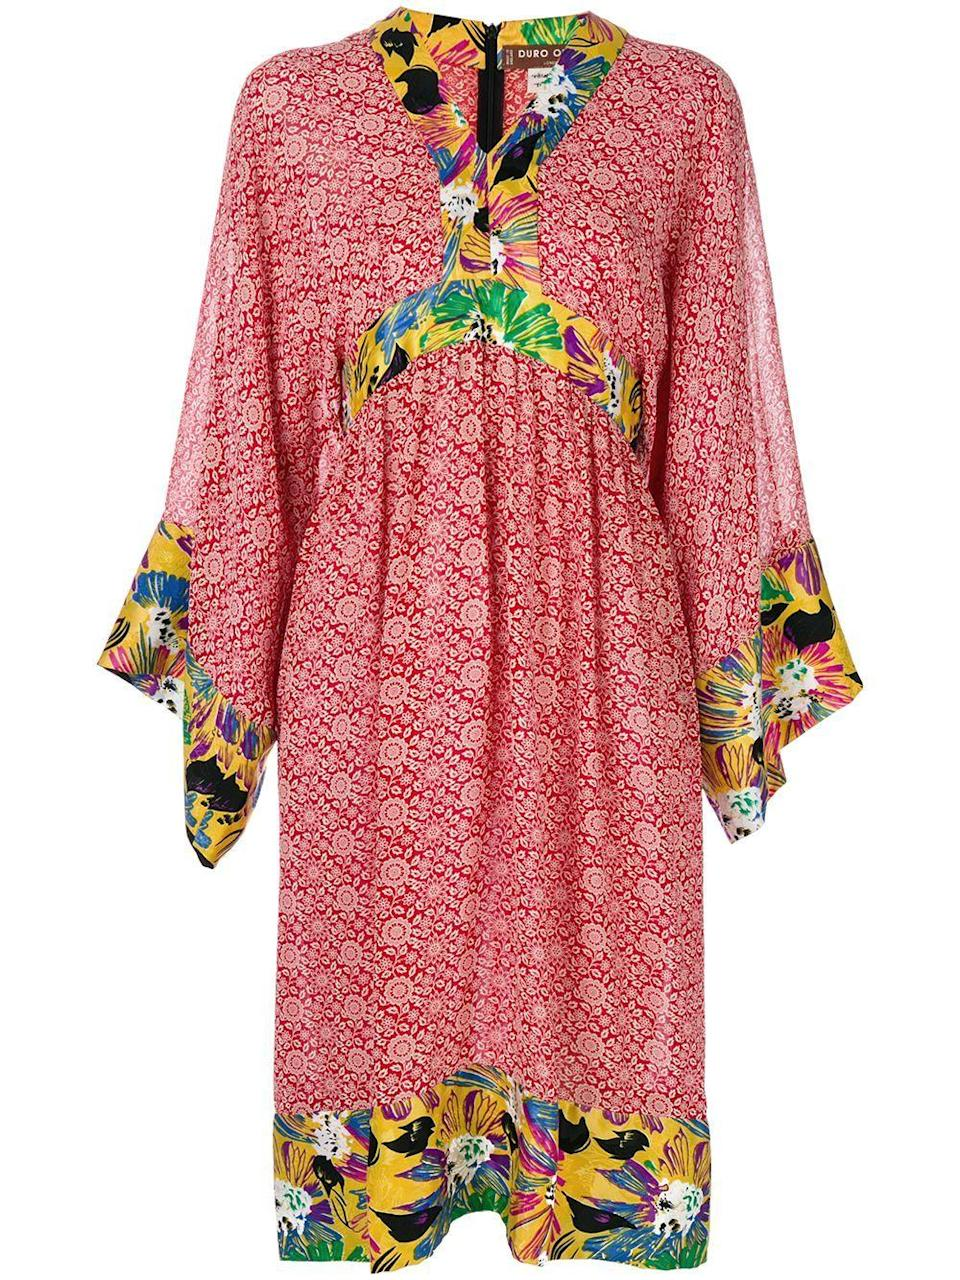 """<p><strong>Duro Olowu Vintage</strong></p><p>farfetch.com</p><p><strong>$1676.00</strong></p><p><a href=""""https://go.redirectingat.com?id=74968X1596630&url=https%3A%2F%2Fwww.farfetch.com%2Fshopping%2Fwomen%2Fduro-olowu-vintage-2000-floral-print-tunic-dress-item-10556039.aspx&sref=https%3A%2F%2Fwww.harpersbazaar.com%2Fwedding%2Fplanning%2Fg33647953%2Ffourth-anniversary-gift-ideas%2F"""" rel=""""nofollow noopener"""" target=""""_blank"""" data-ylk=""""slk:SHOP NOW"""" class=""""link rapid-noclick-resp"""">SHOP NOW</a></p><p>A floral dress made of linen or silk can be worn around the house, for a day date around town, or dressed up for dinner. Plus, it has the added bonus of tapping into the traditionally English gift for year #4, which is something chic made of linen or silk.</p>"""